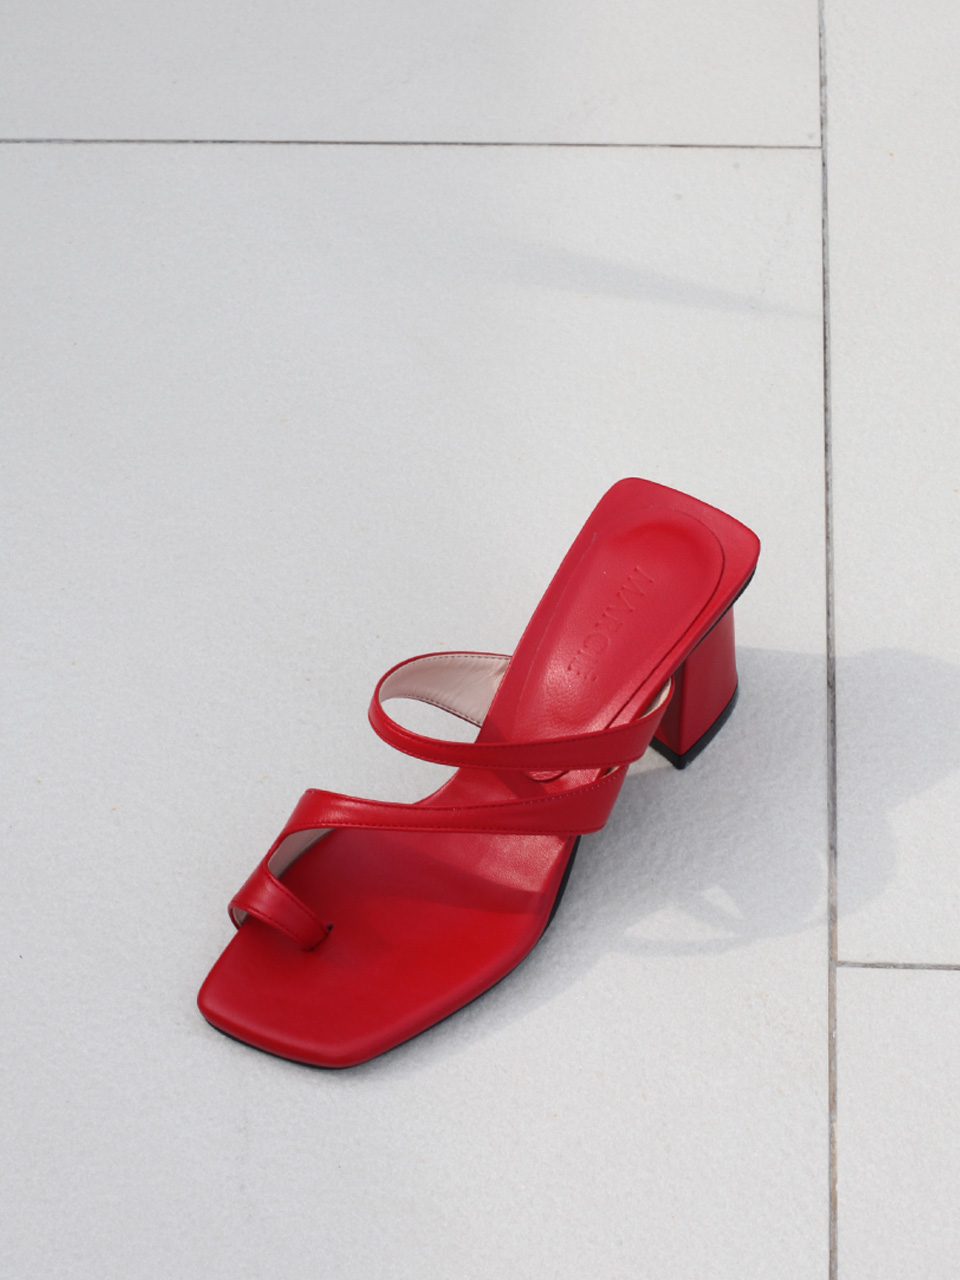 Mrc036 Resort Sandal (Red)